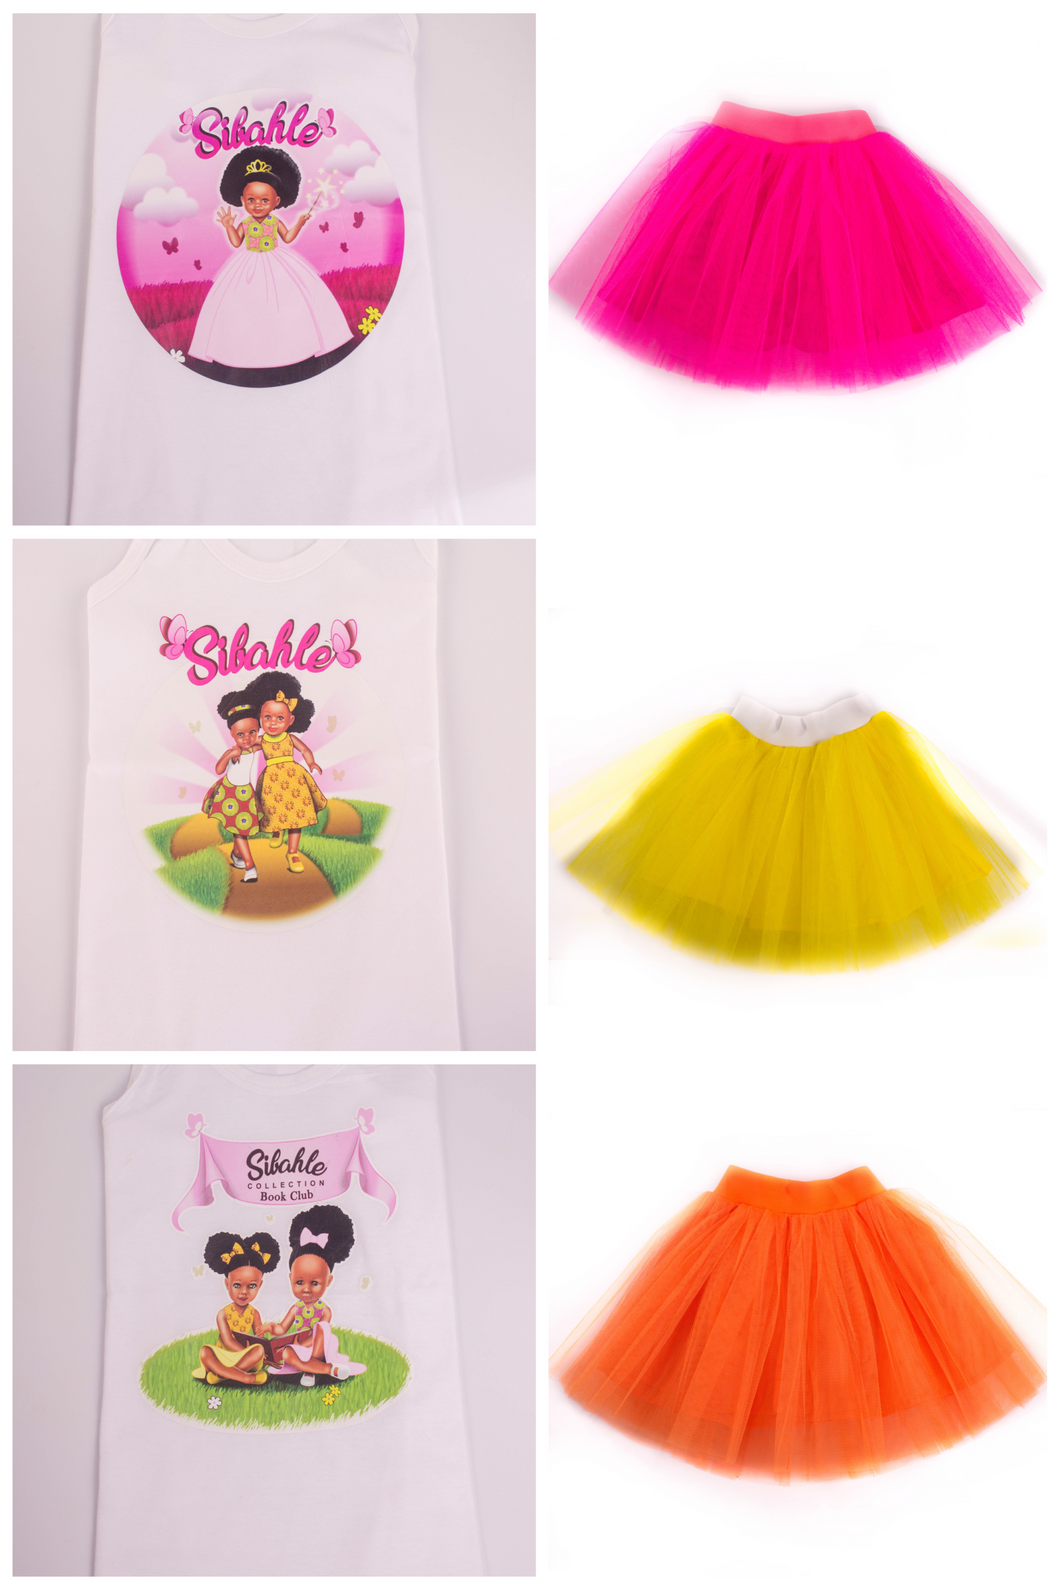 Nobuhle and Bontle Vest with Tutu Skirt - Sibahle Collection